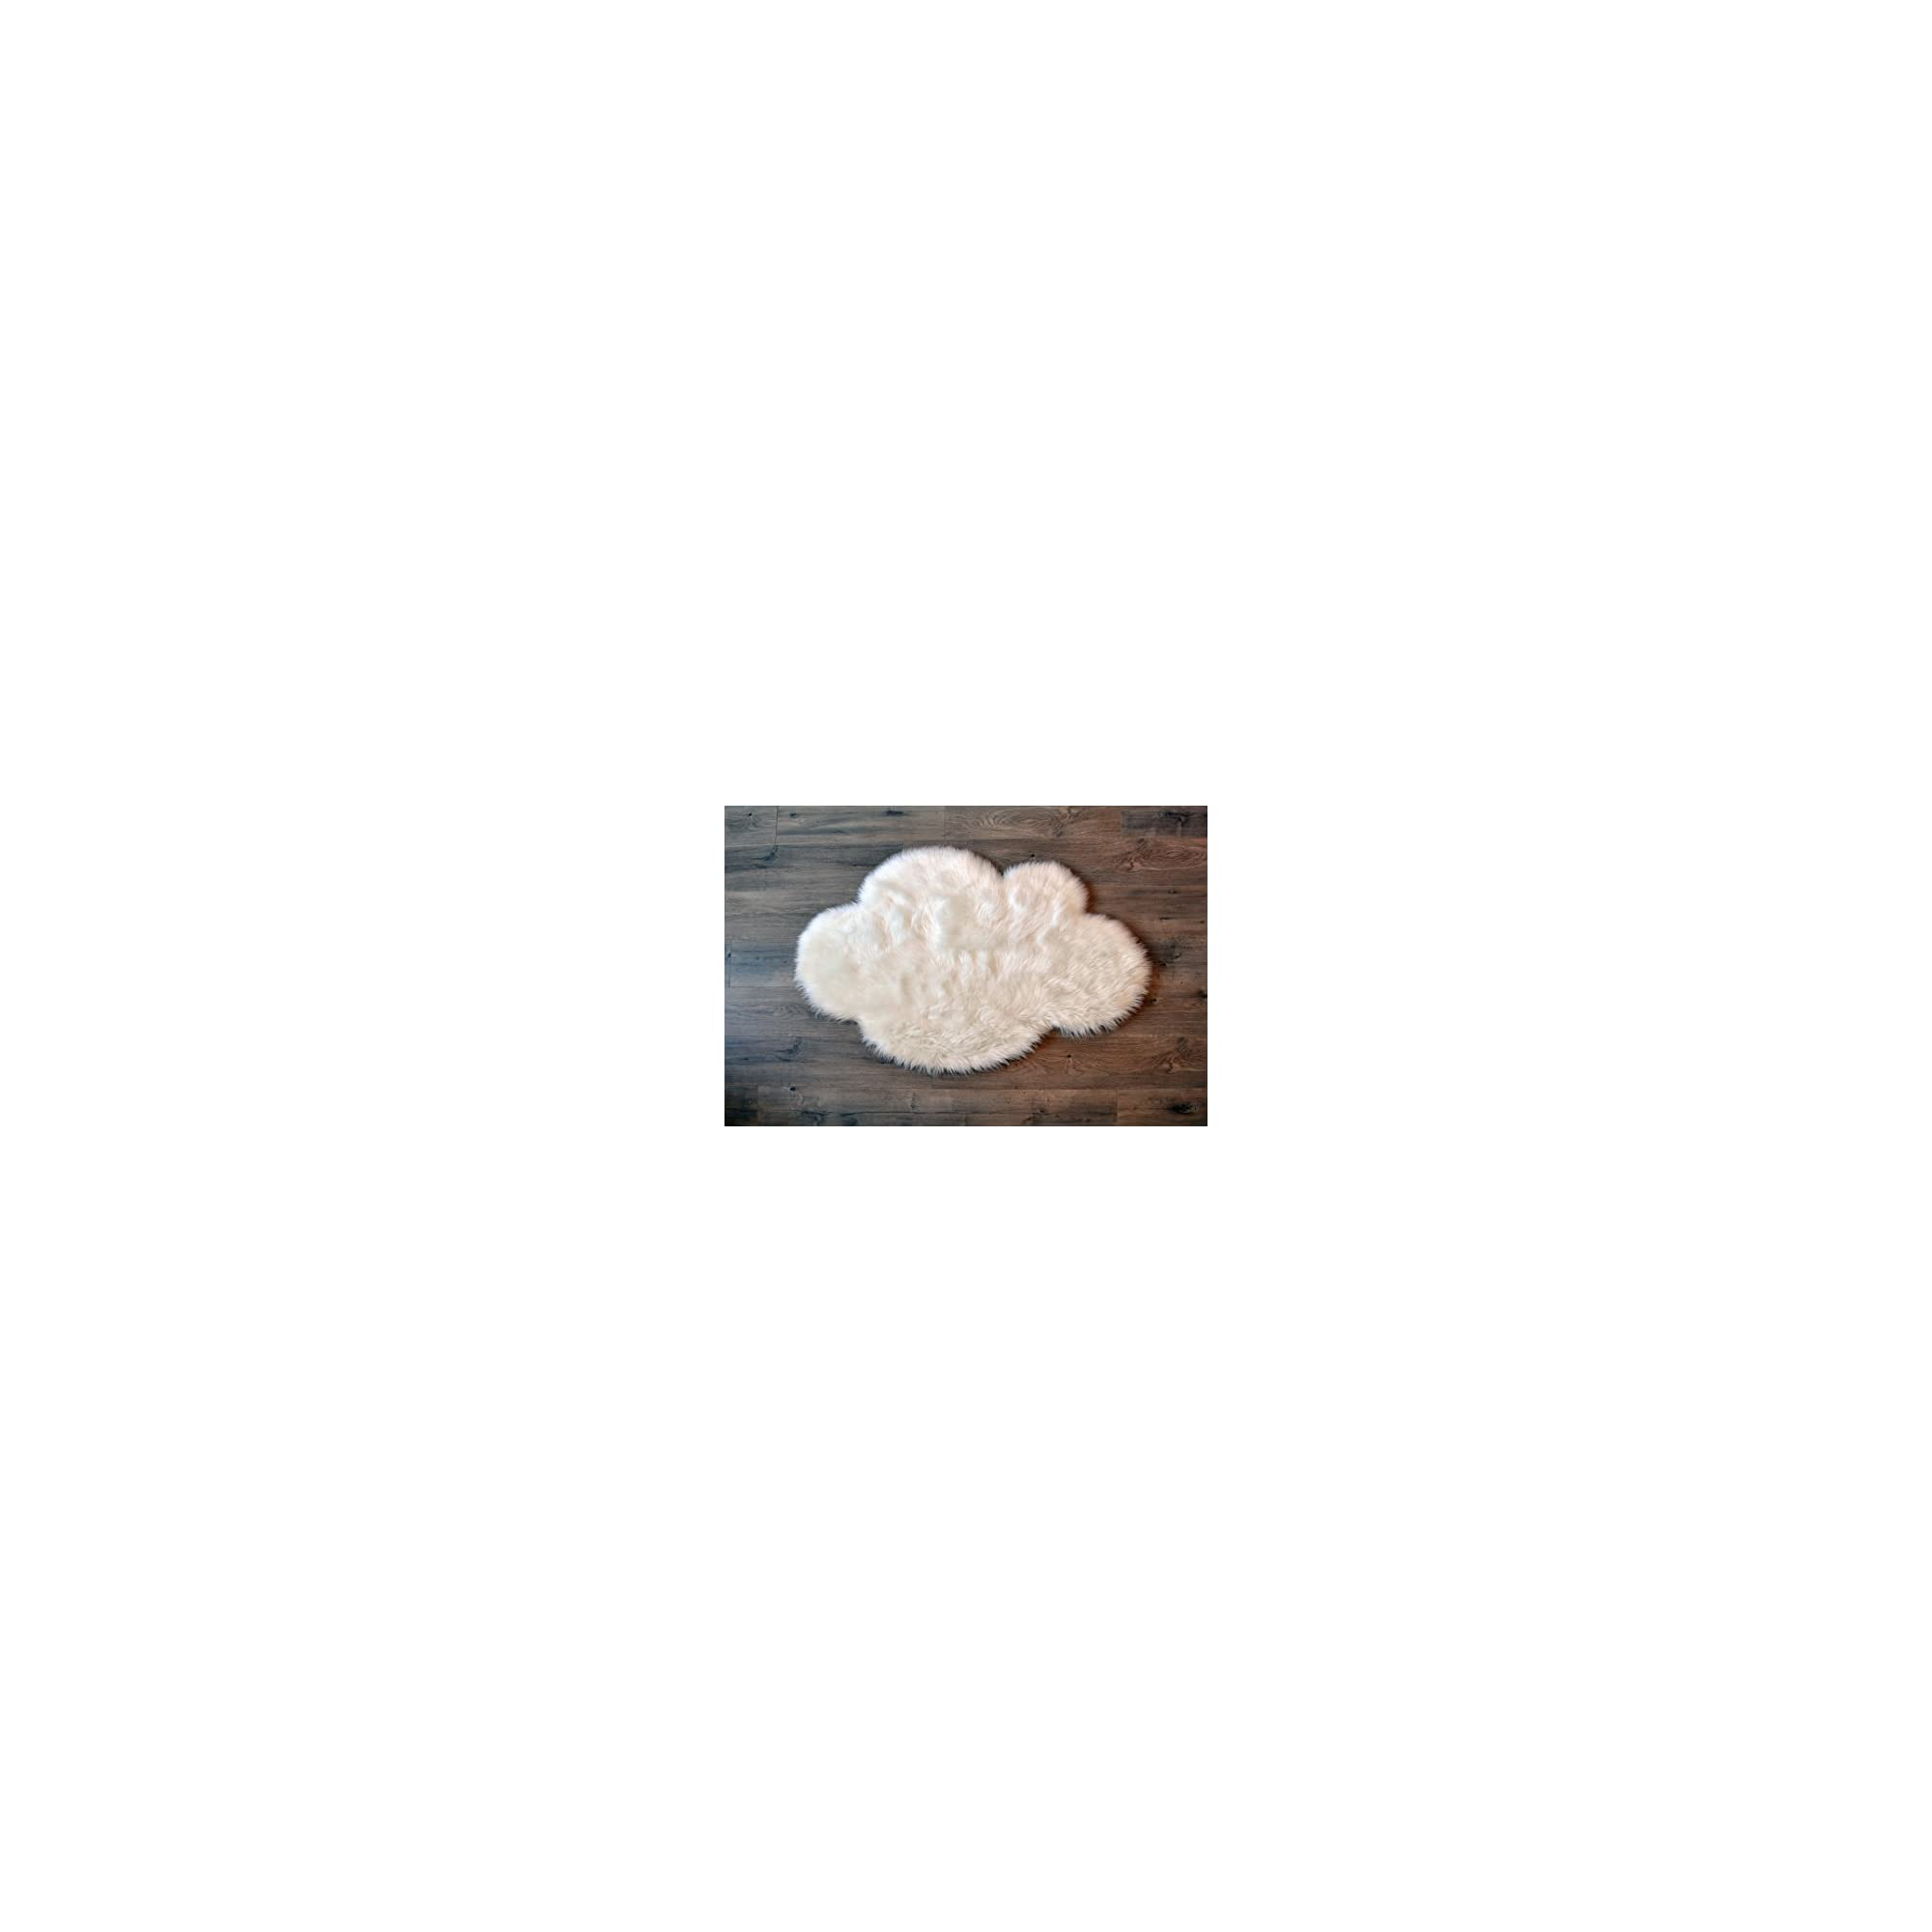 Machine Washable Faux Sheepskin White Cloud Area Rug 32″ x 44″ – Soft and Silky – Perfect for Baby's Room, Nursery, playroom (2′ 7″ x 3′ 7″) – White Cloud